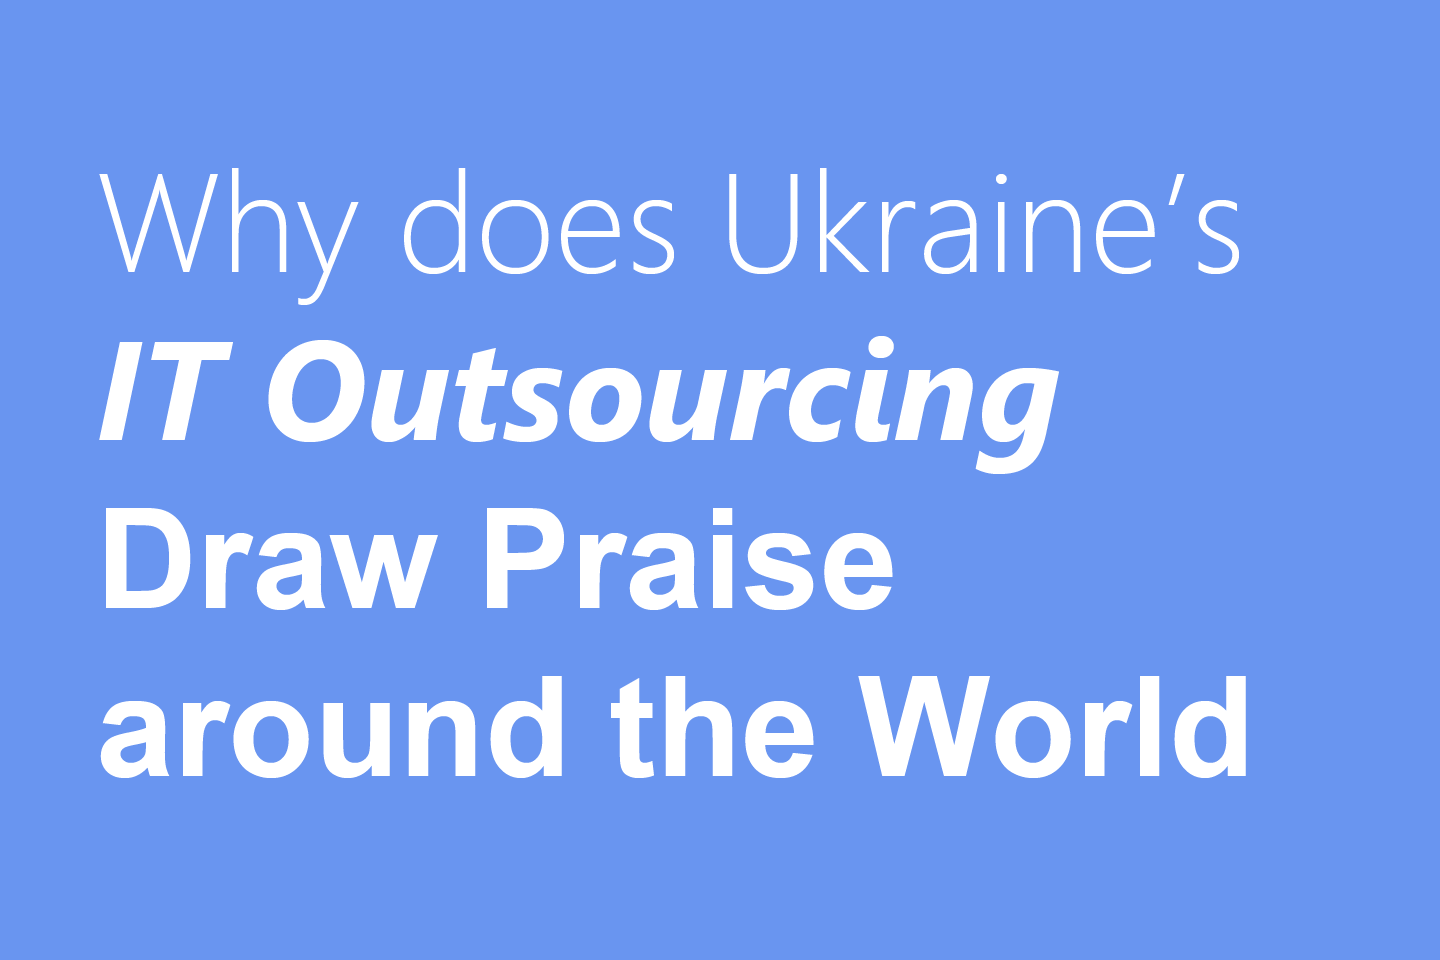 Ukraine's IT Outsourcing Draws Praise around the World and Here is Why